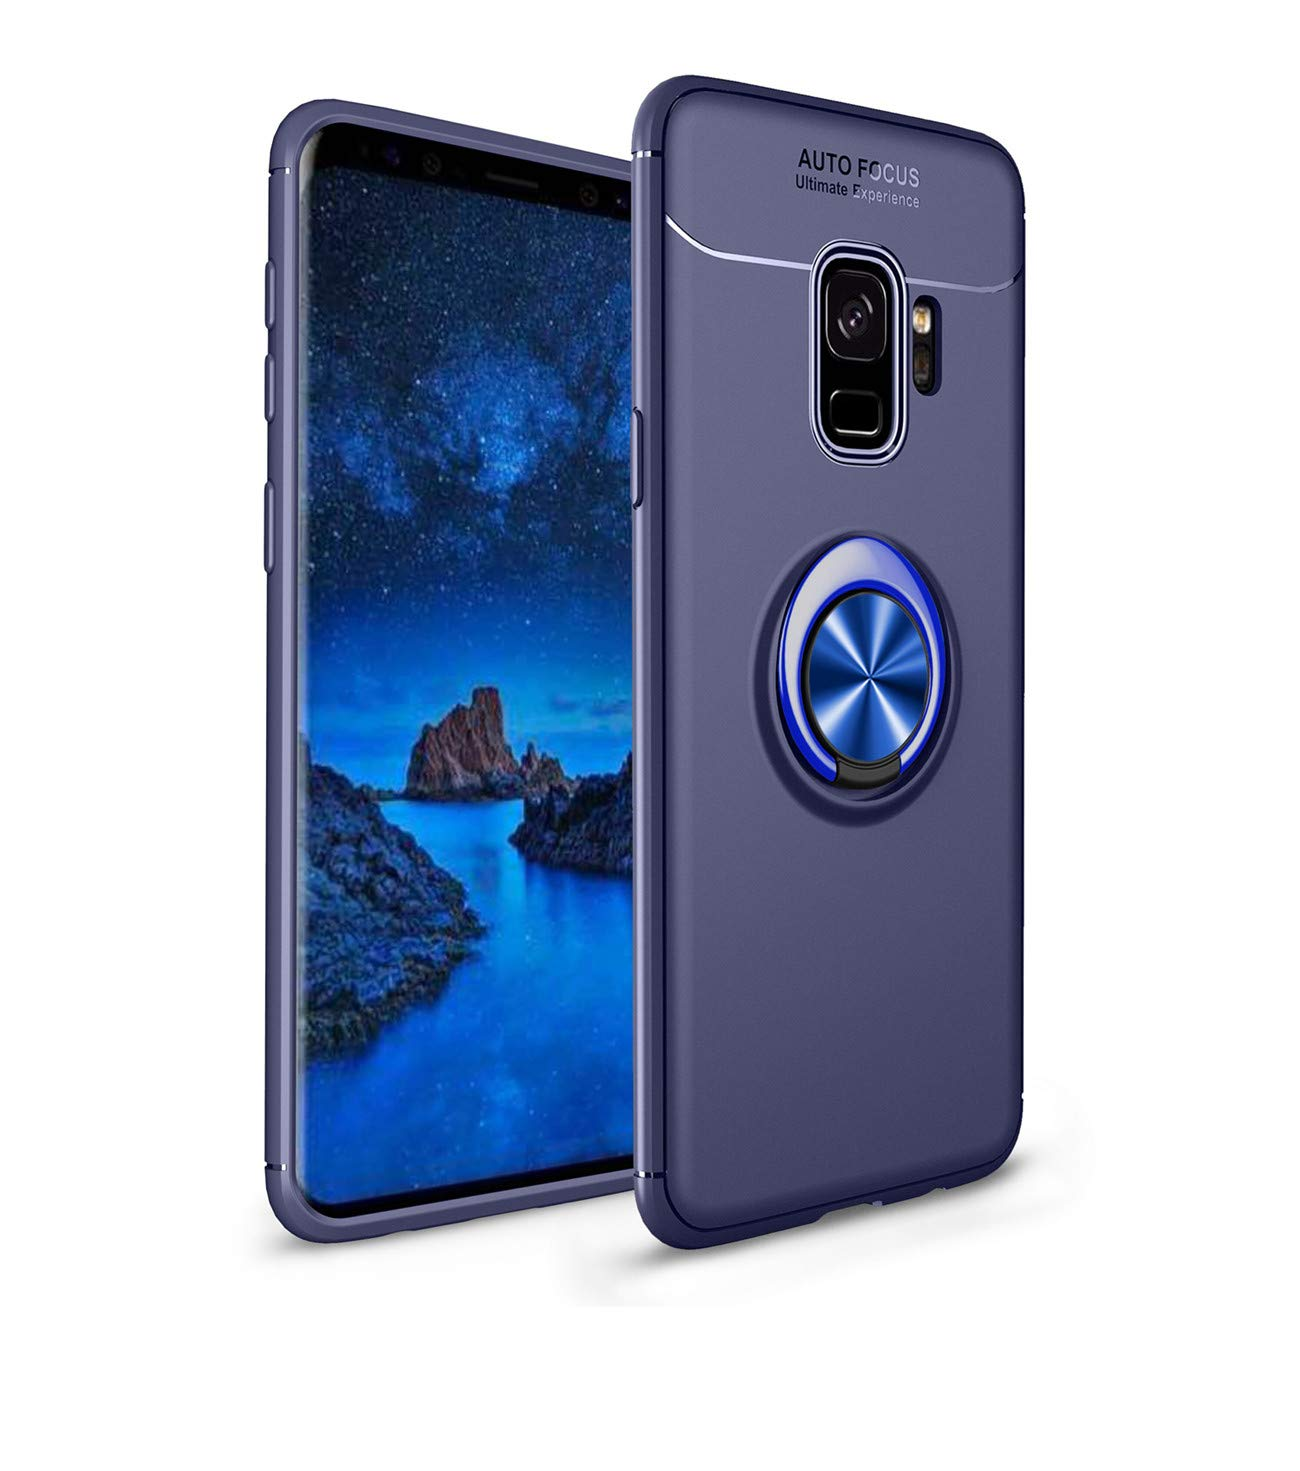 Heavy Armor Samsung Galaxy S9 Case Ring Holder Kickstand Magnetic Base Dual Layer Car Mount Rotable Dual Layer Protective Silicone Shell TPU Back Samsung Galaxy S9 Plus (6, Samsung Galaxy S9 Plus) by 54lany